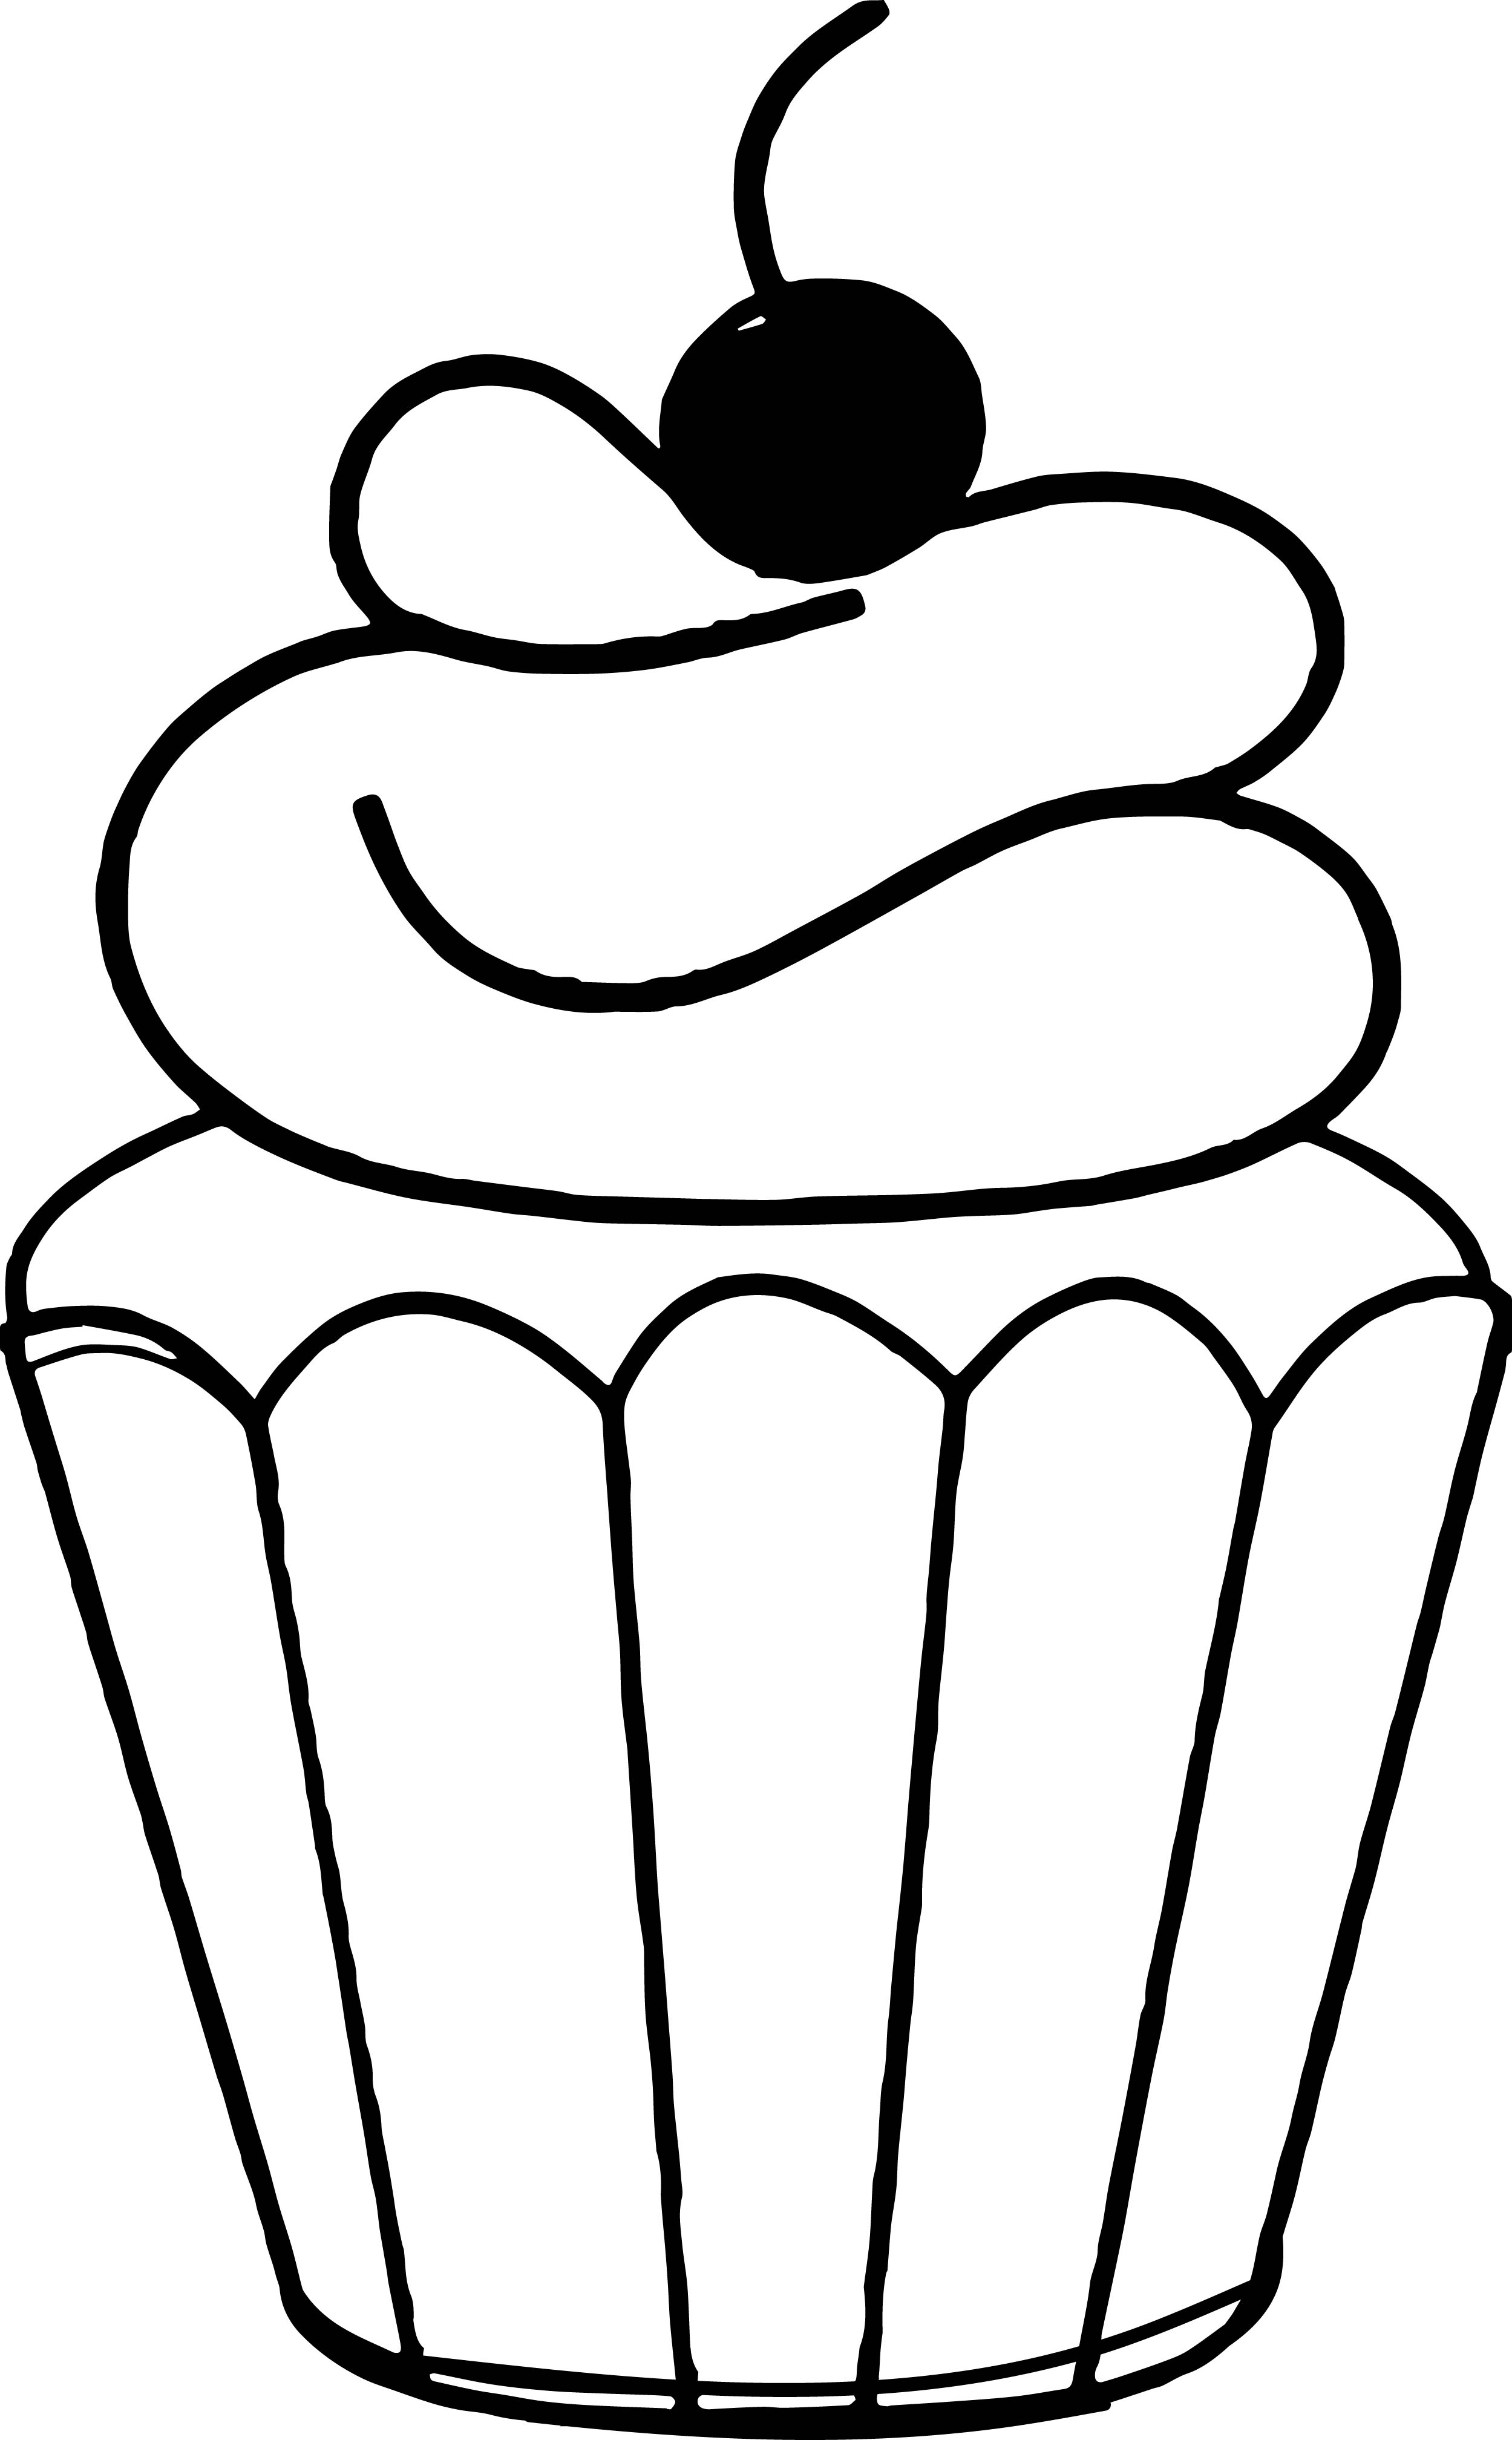 Cupcake Clipart White - ClipArt Best